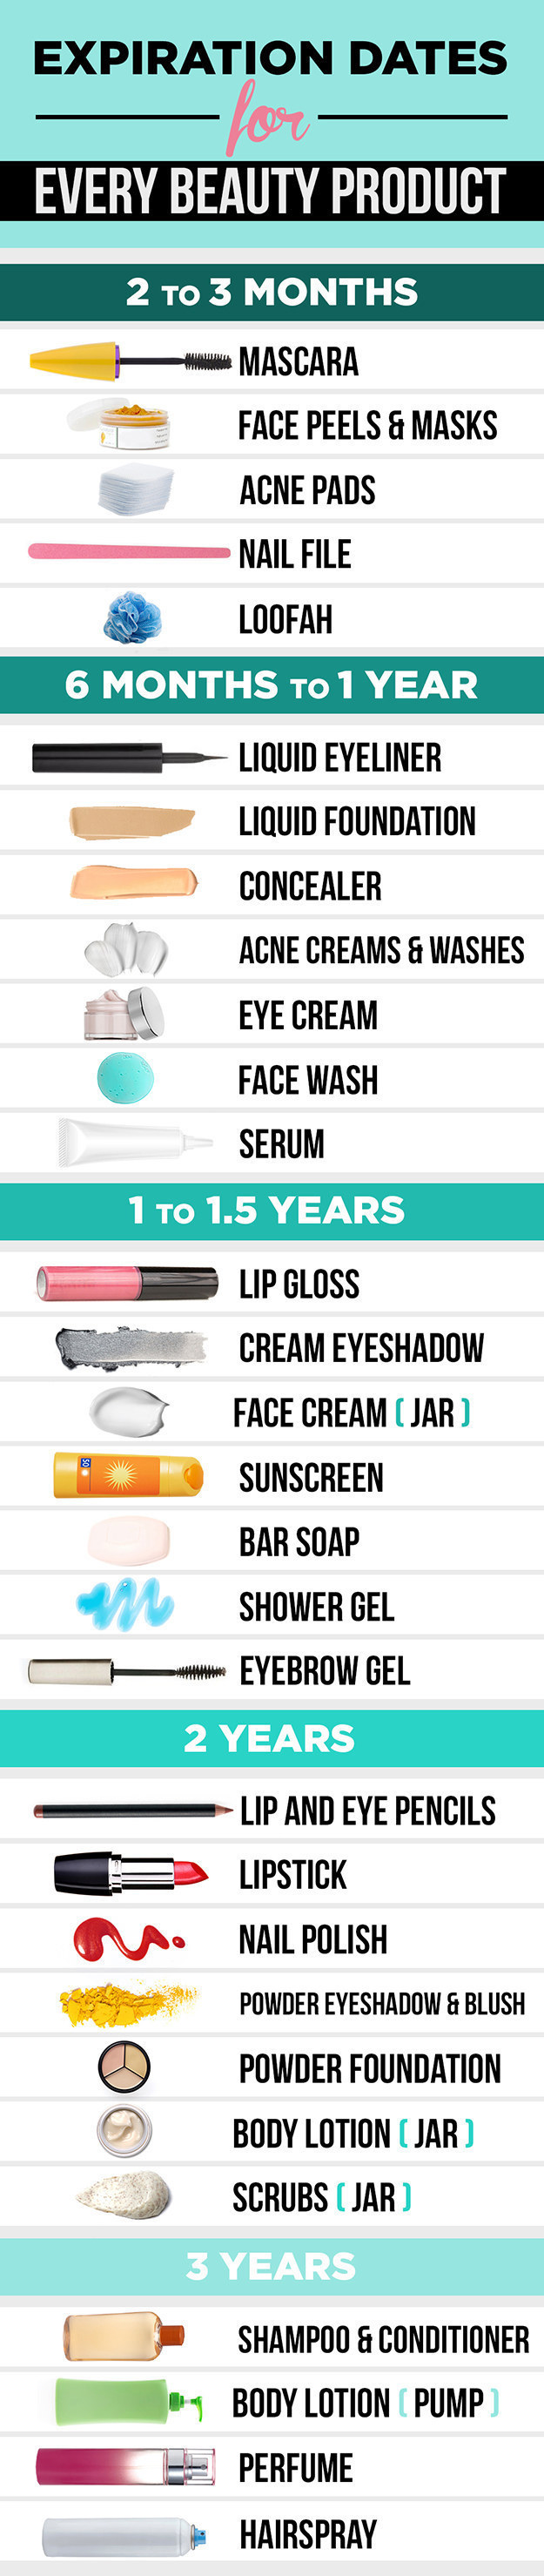 Know the Expirate Date of Each Beauty Product